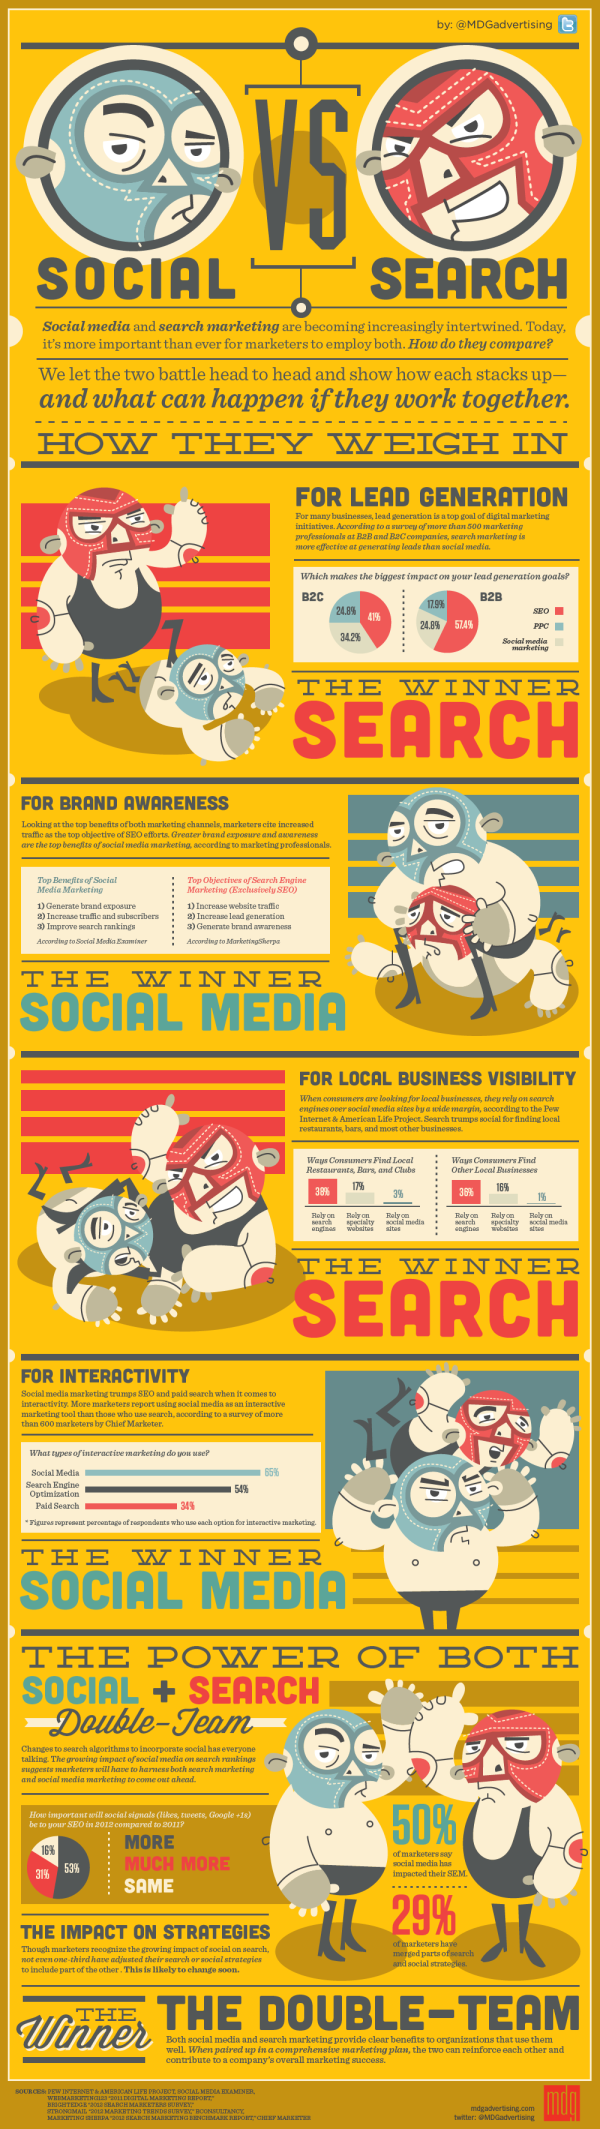 SEO versus Social Media resized 600